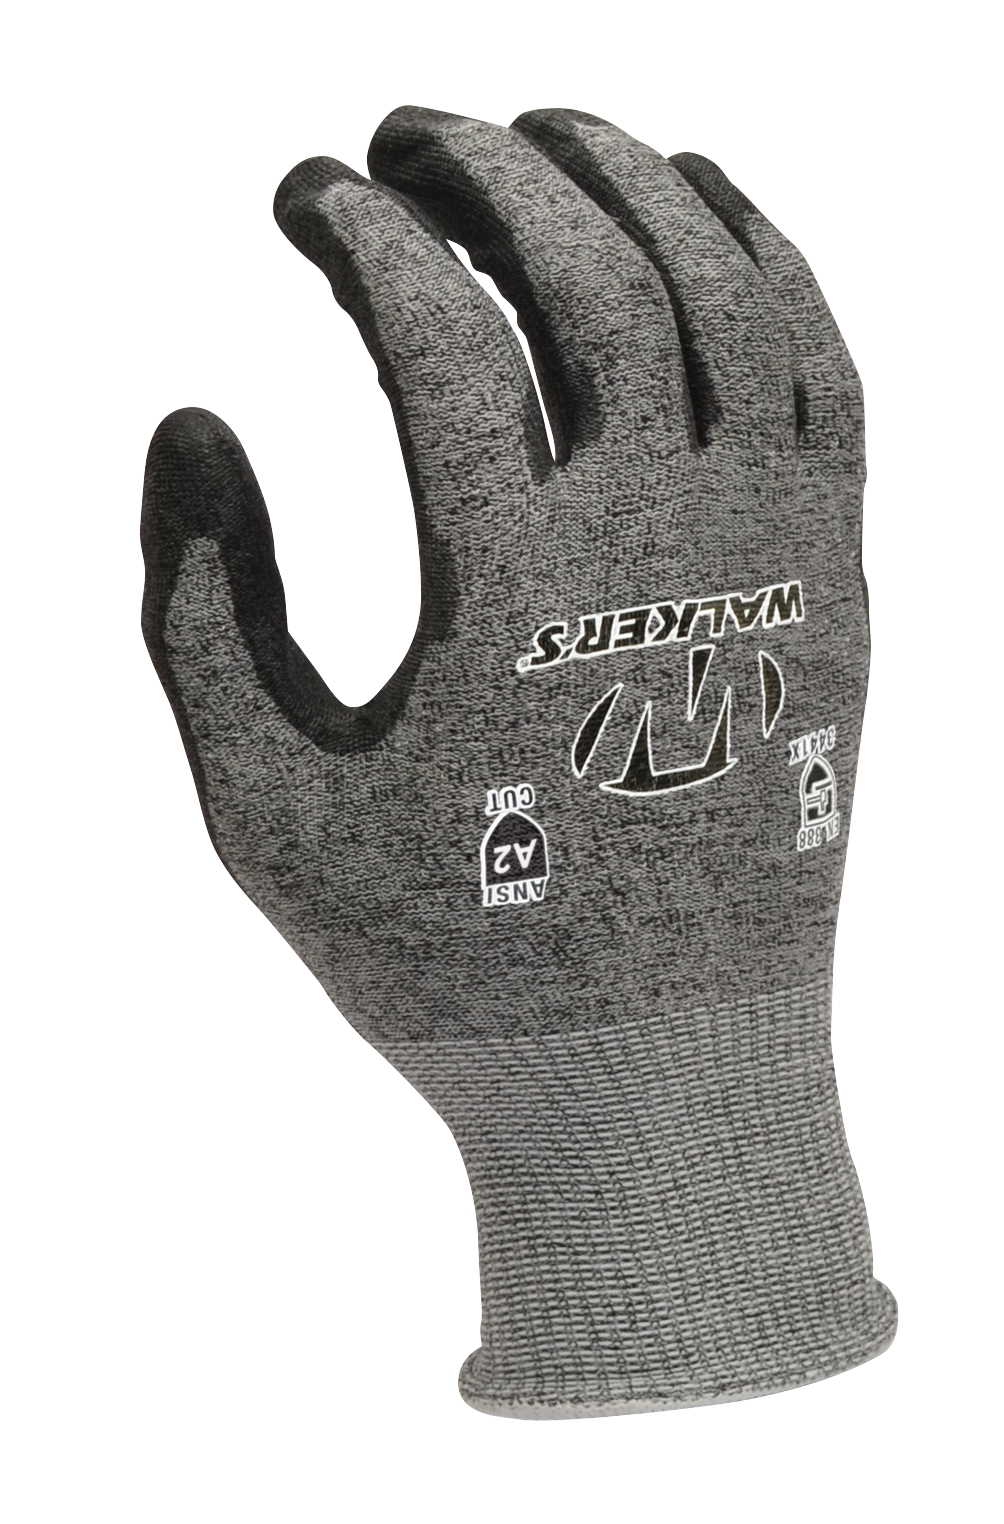 Walker's A2 Cut Resistant Safety Glove